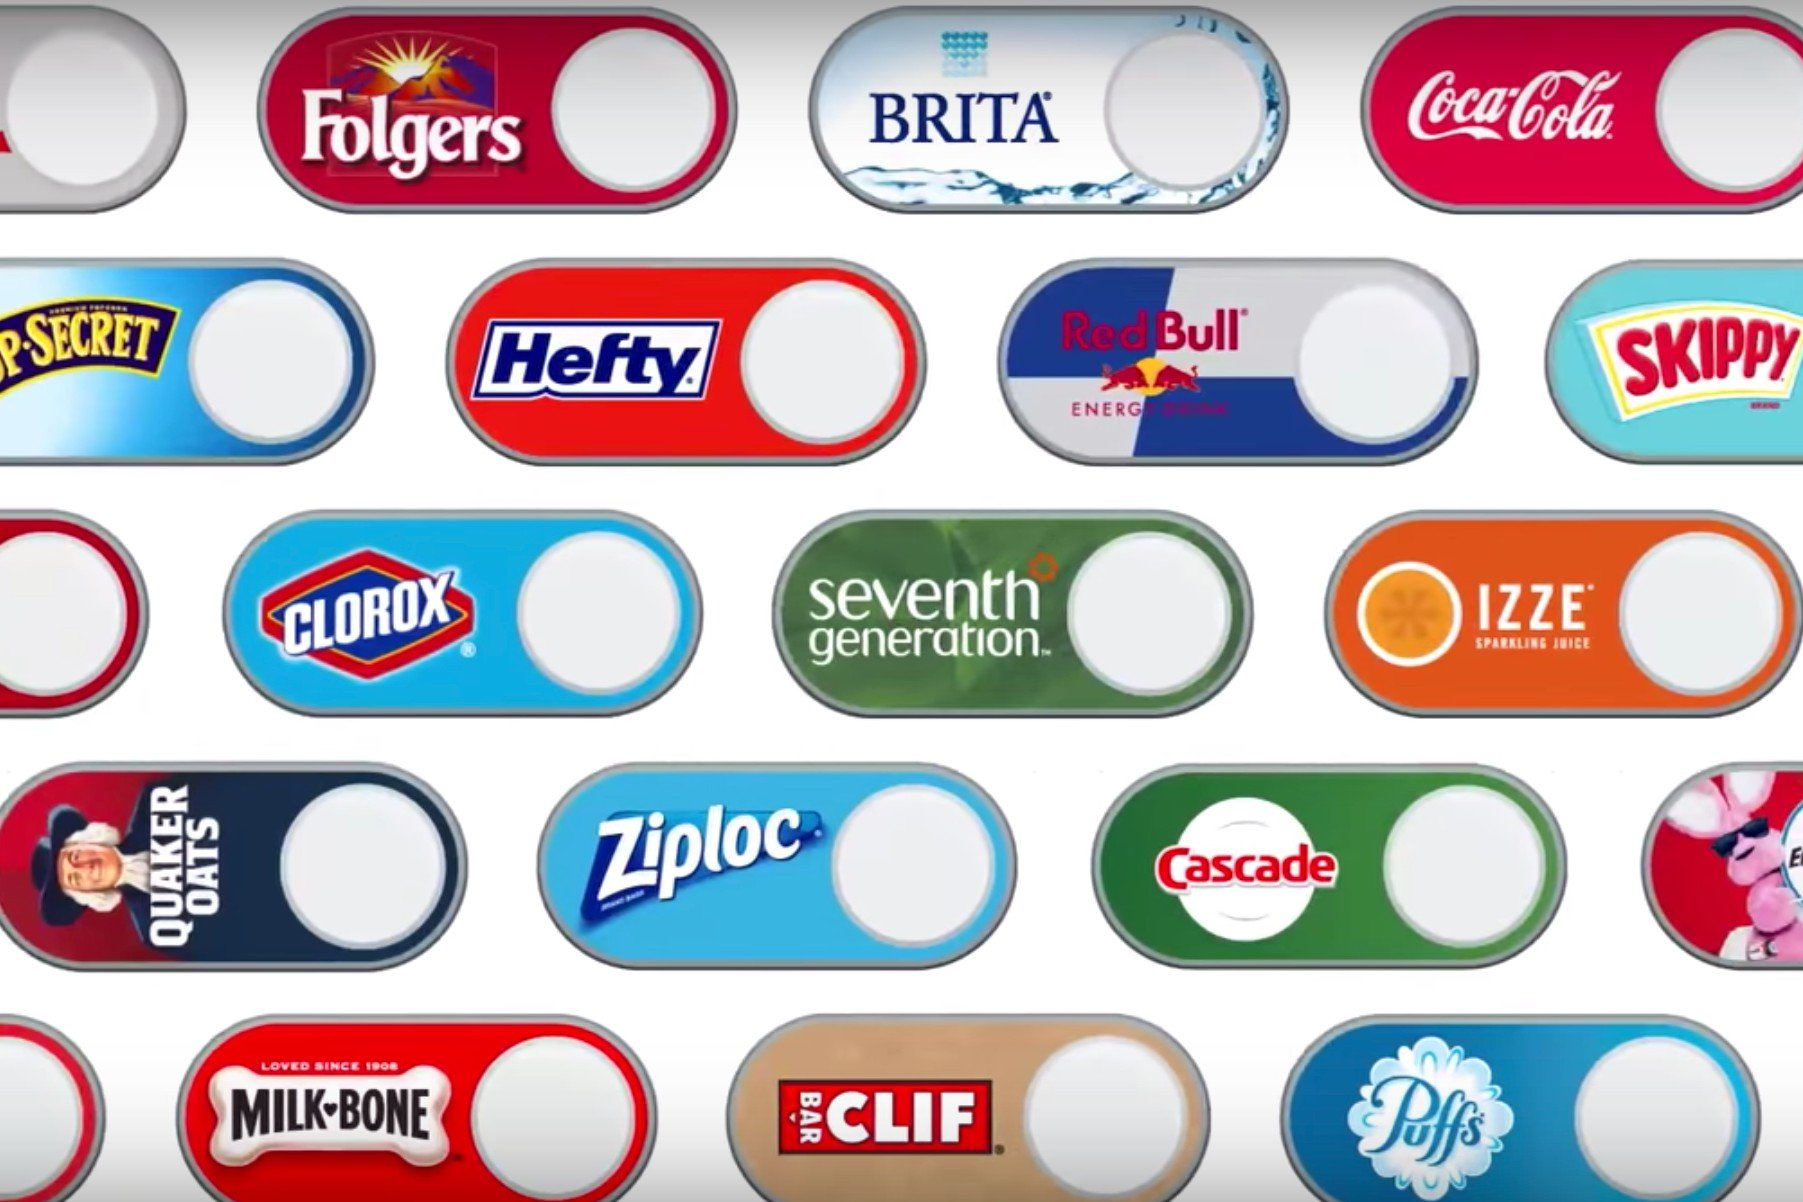 News about Amazon Dash, Canada Goose, Pinterest: Wake-Up Call